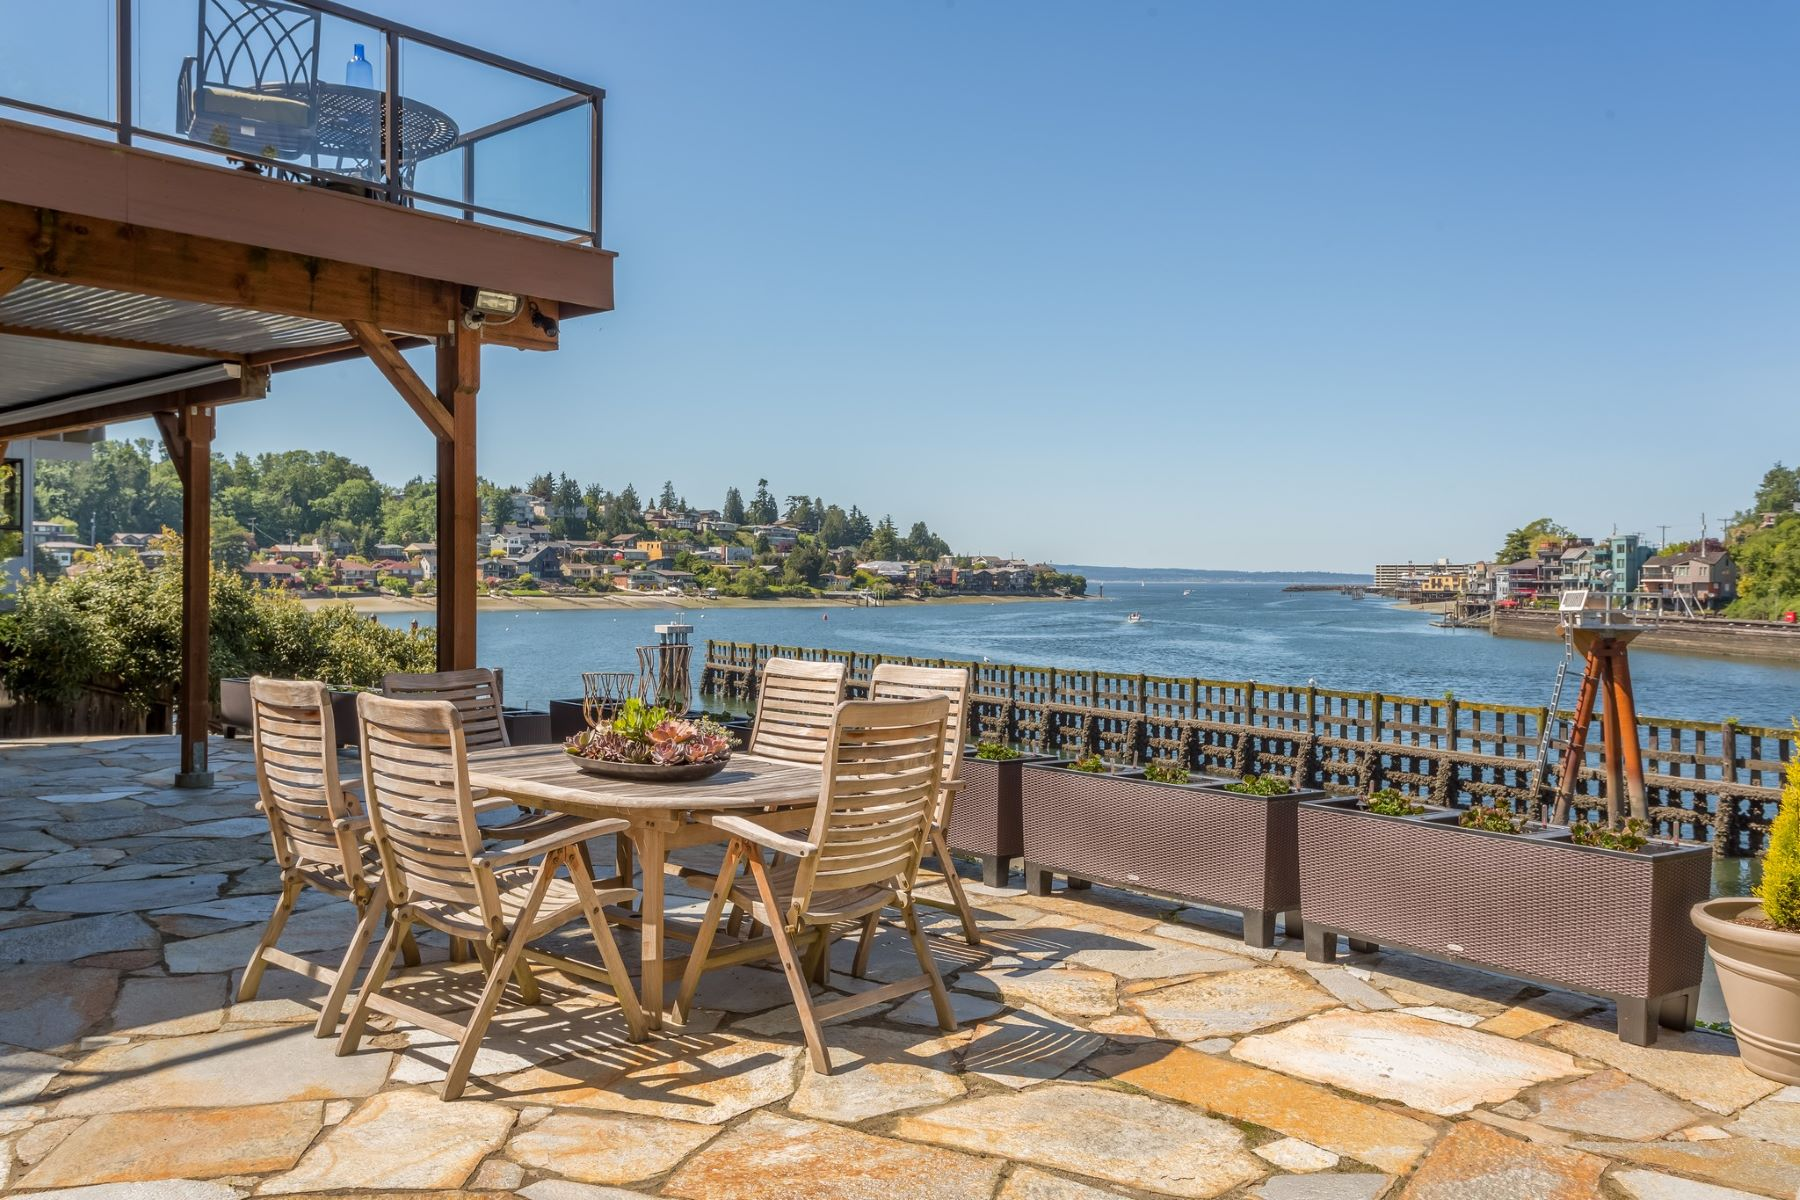 Single Family Home for Sale at Salmon Bay NW Contemporary 3500 W Commodore Way Seattle, Washington 98199 United States